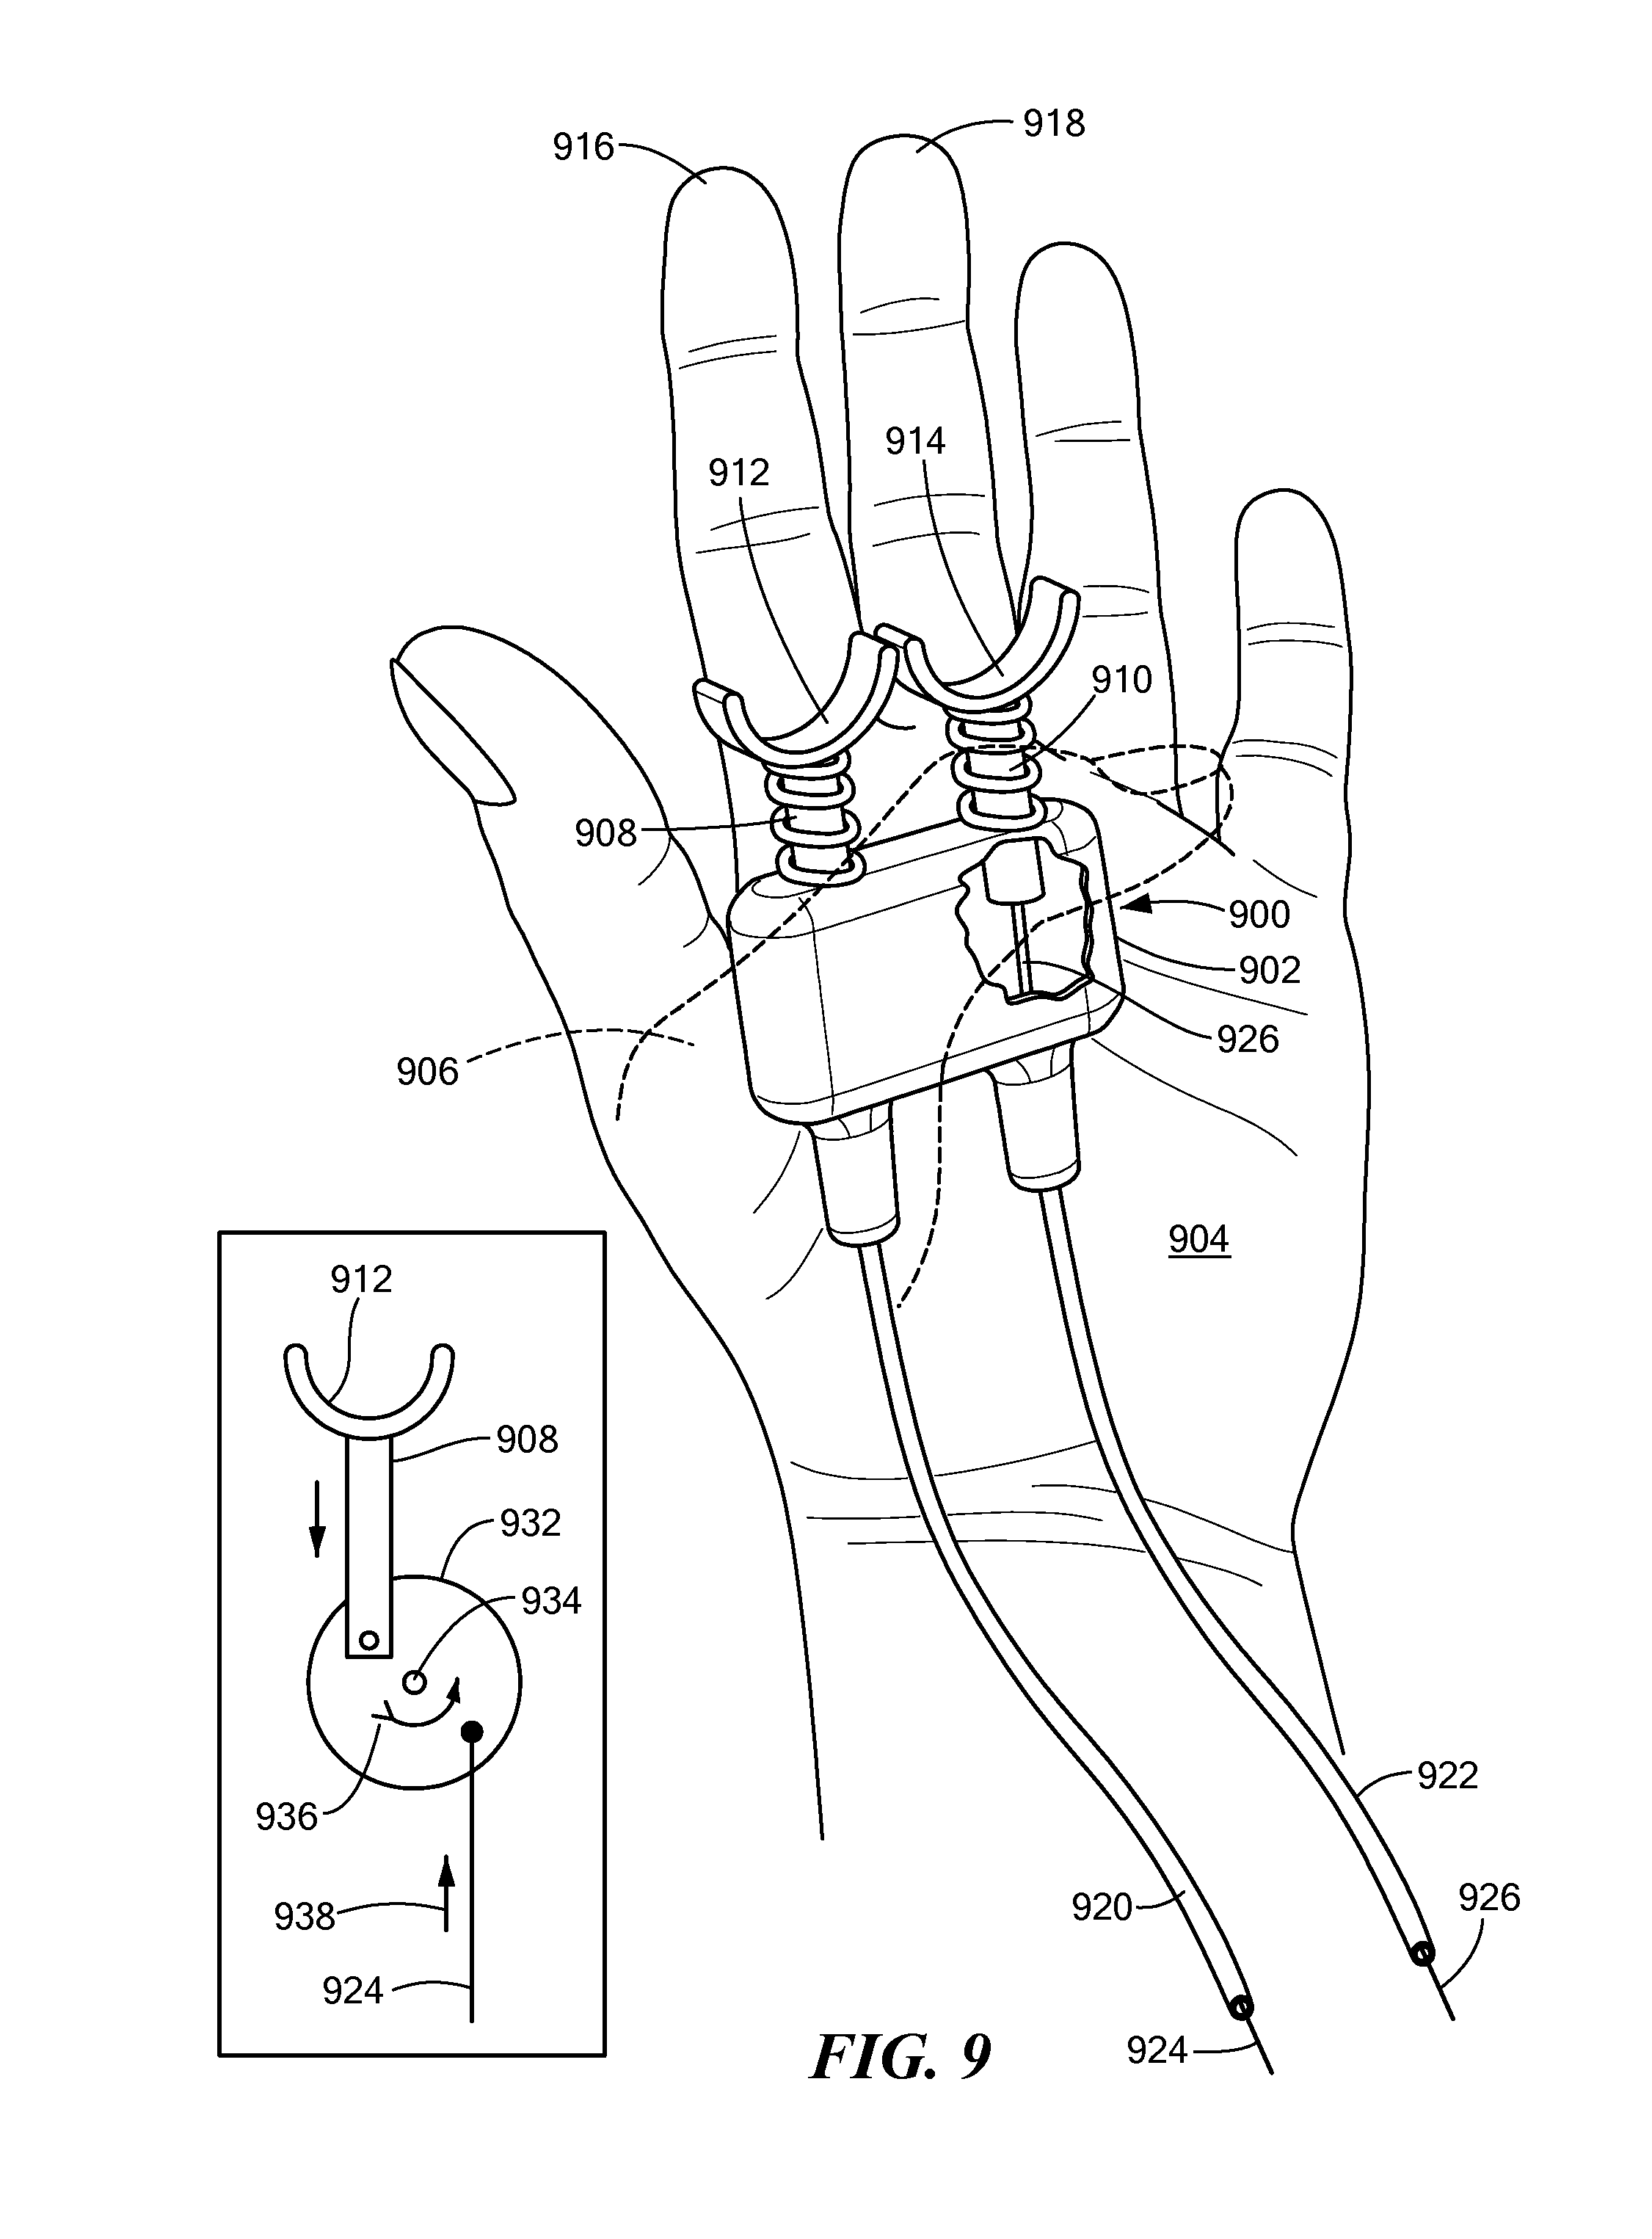 Finger Controls for Moving Rabit ears- Patent Drawing